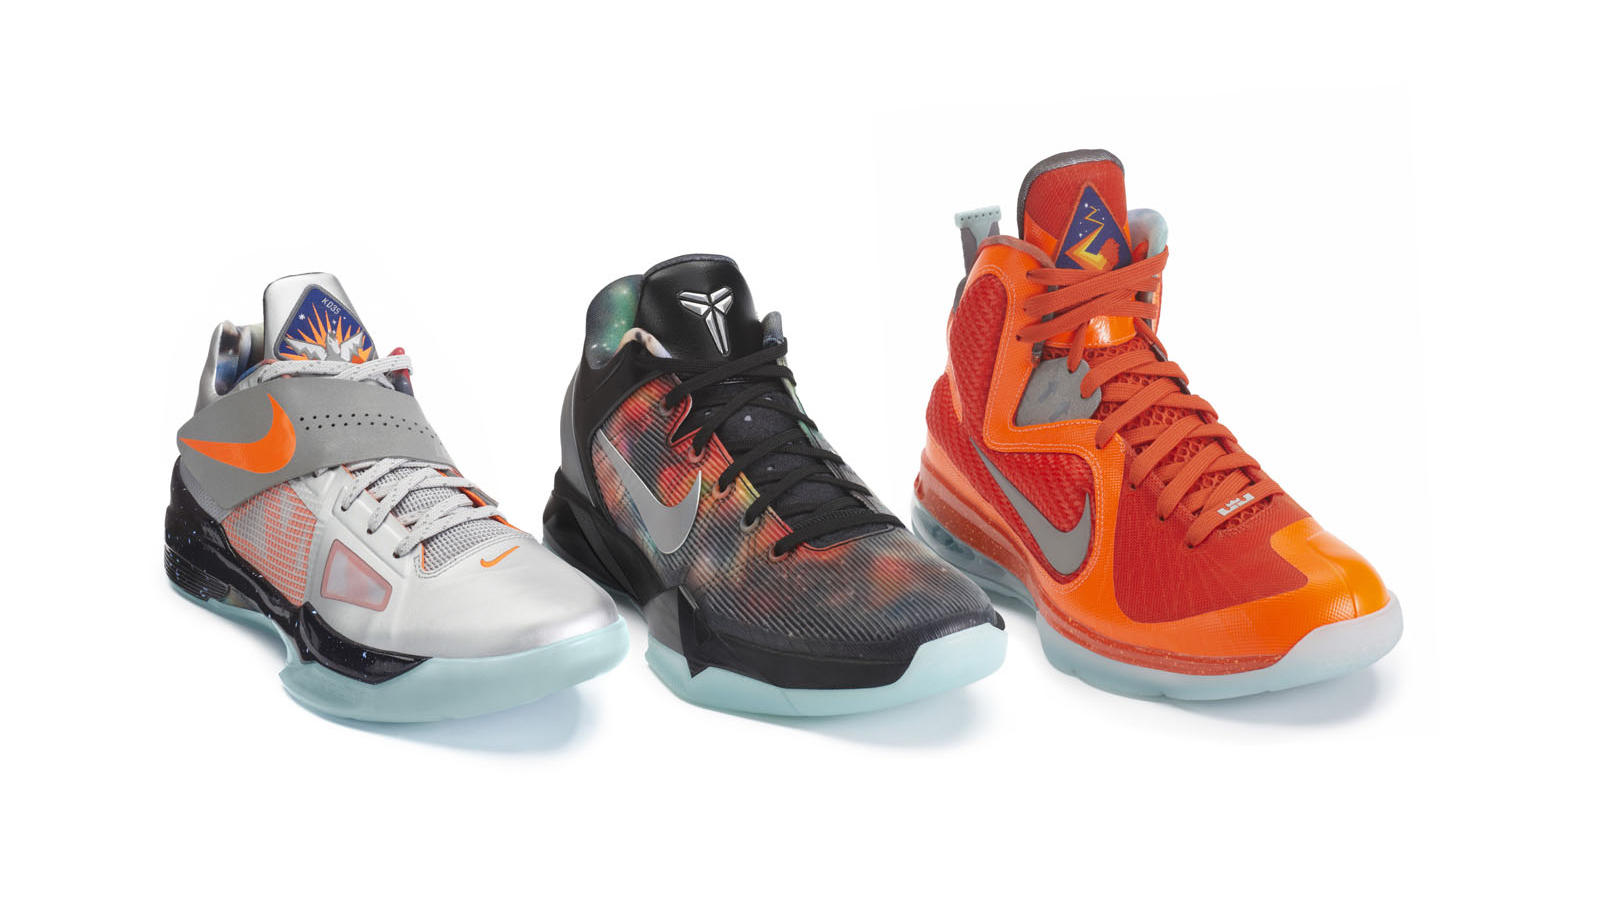 Orlando Special Basketball For News Editions Nike Introduces v7Yf6bIgy